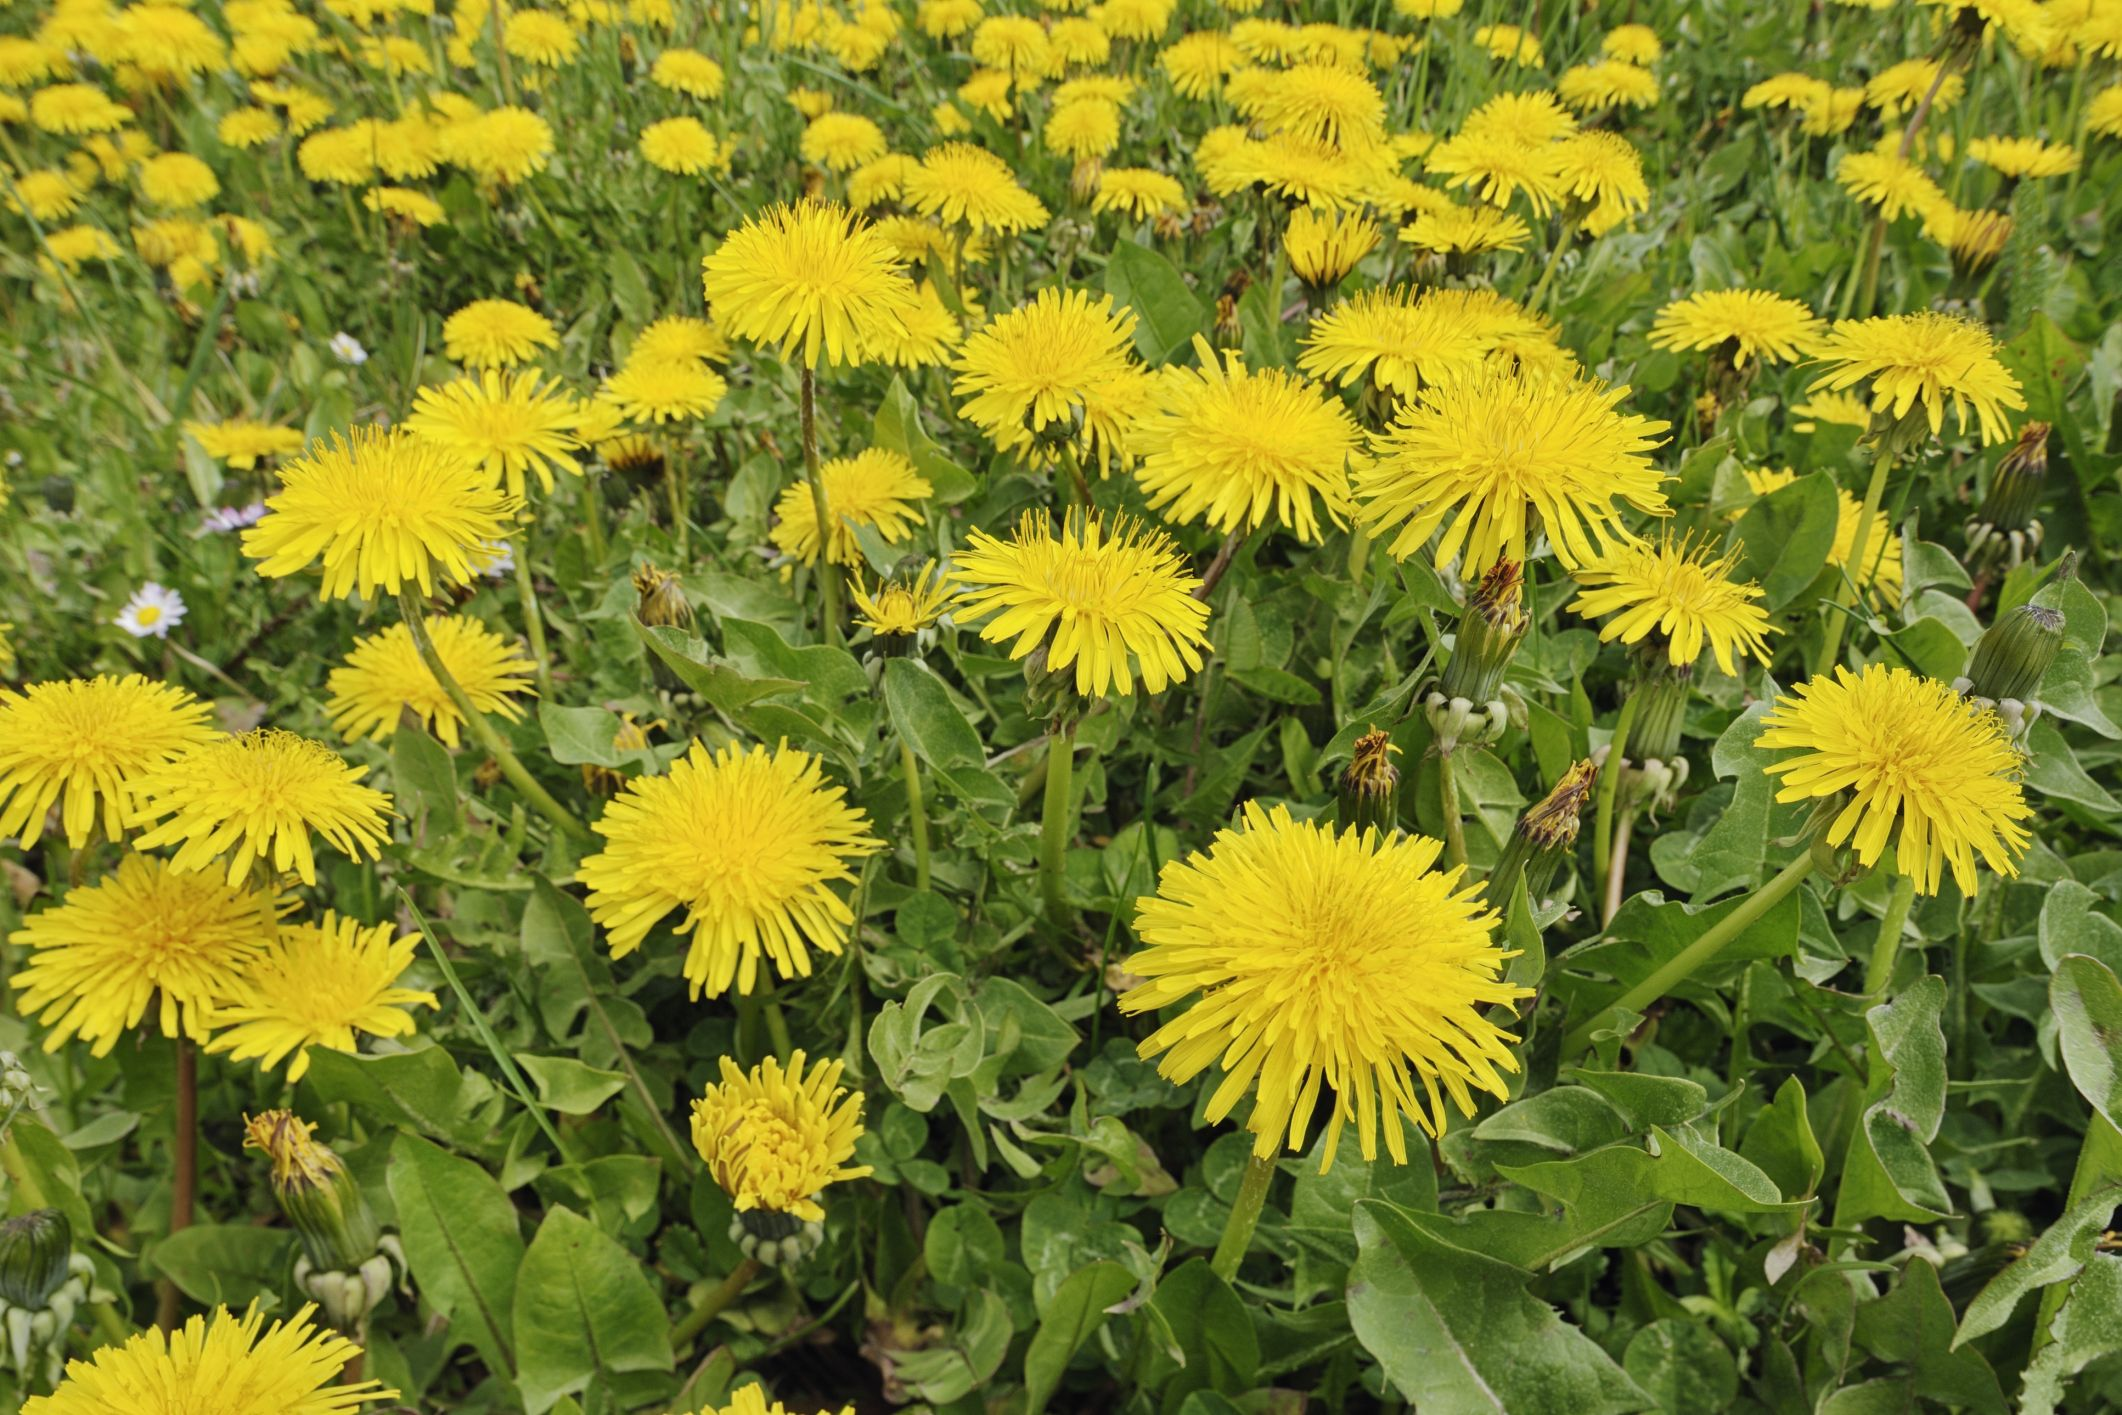 Edible Weeds Wild Plants And Weeds You Can Eat